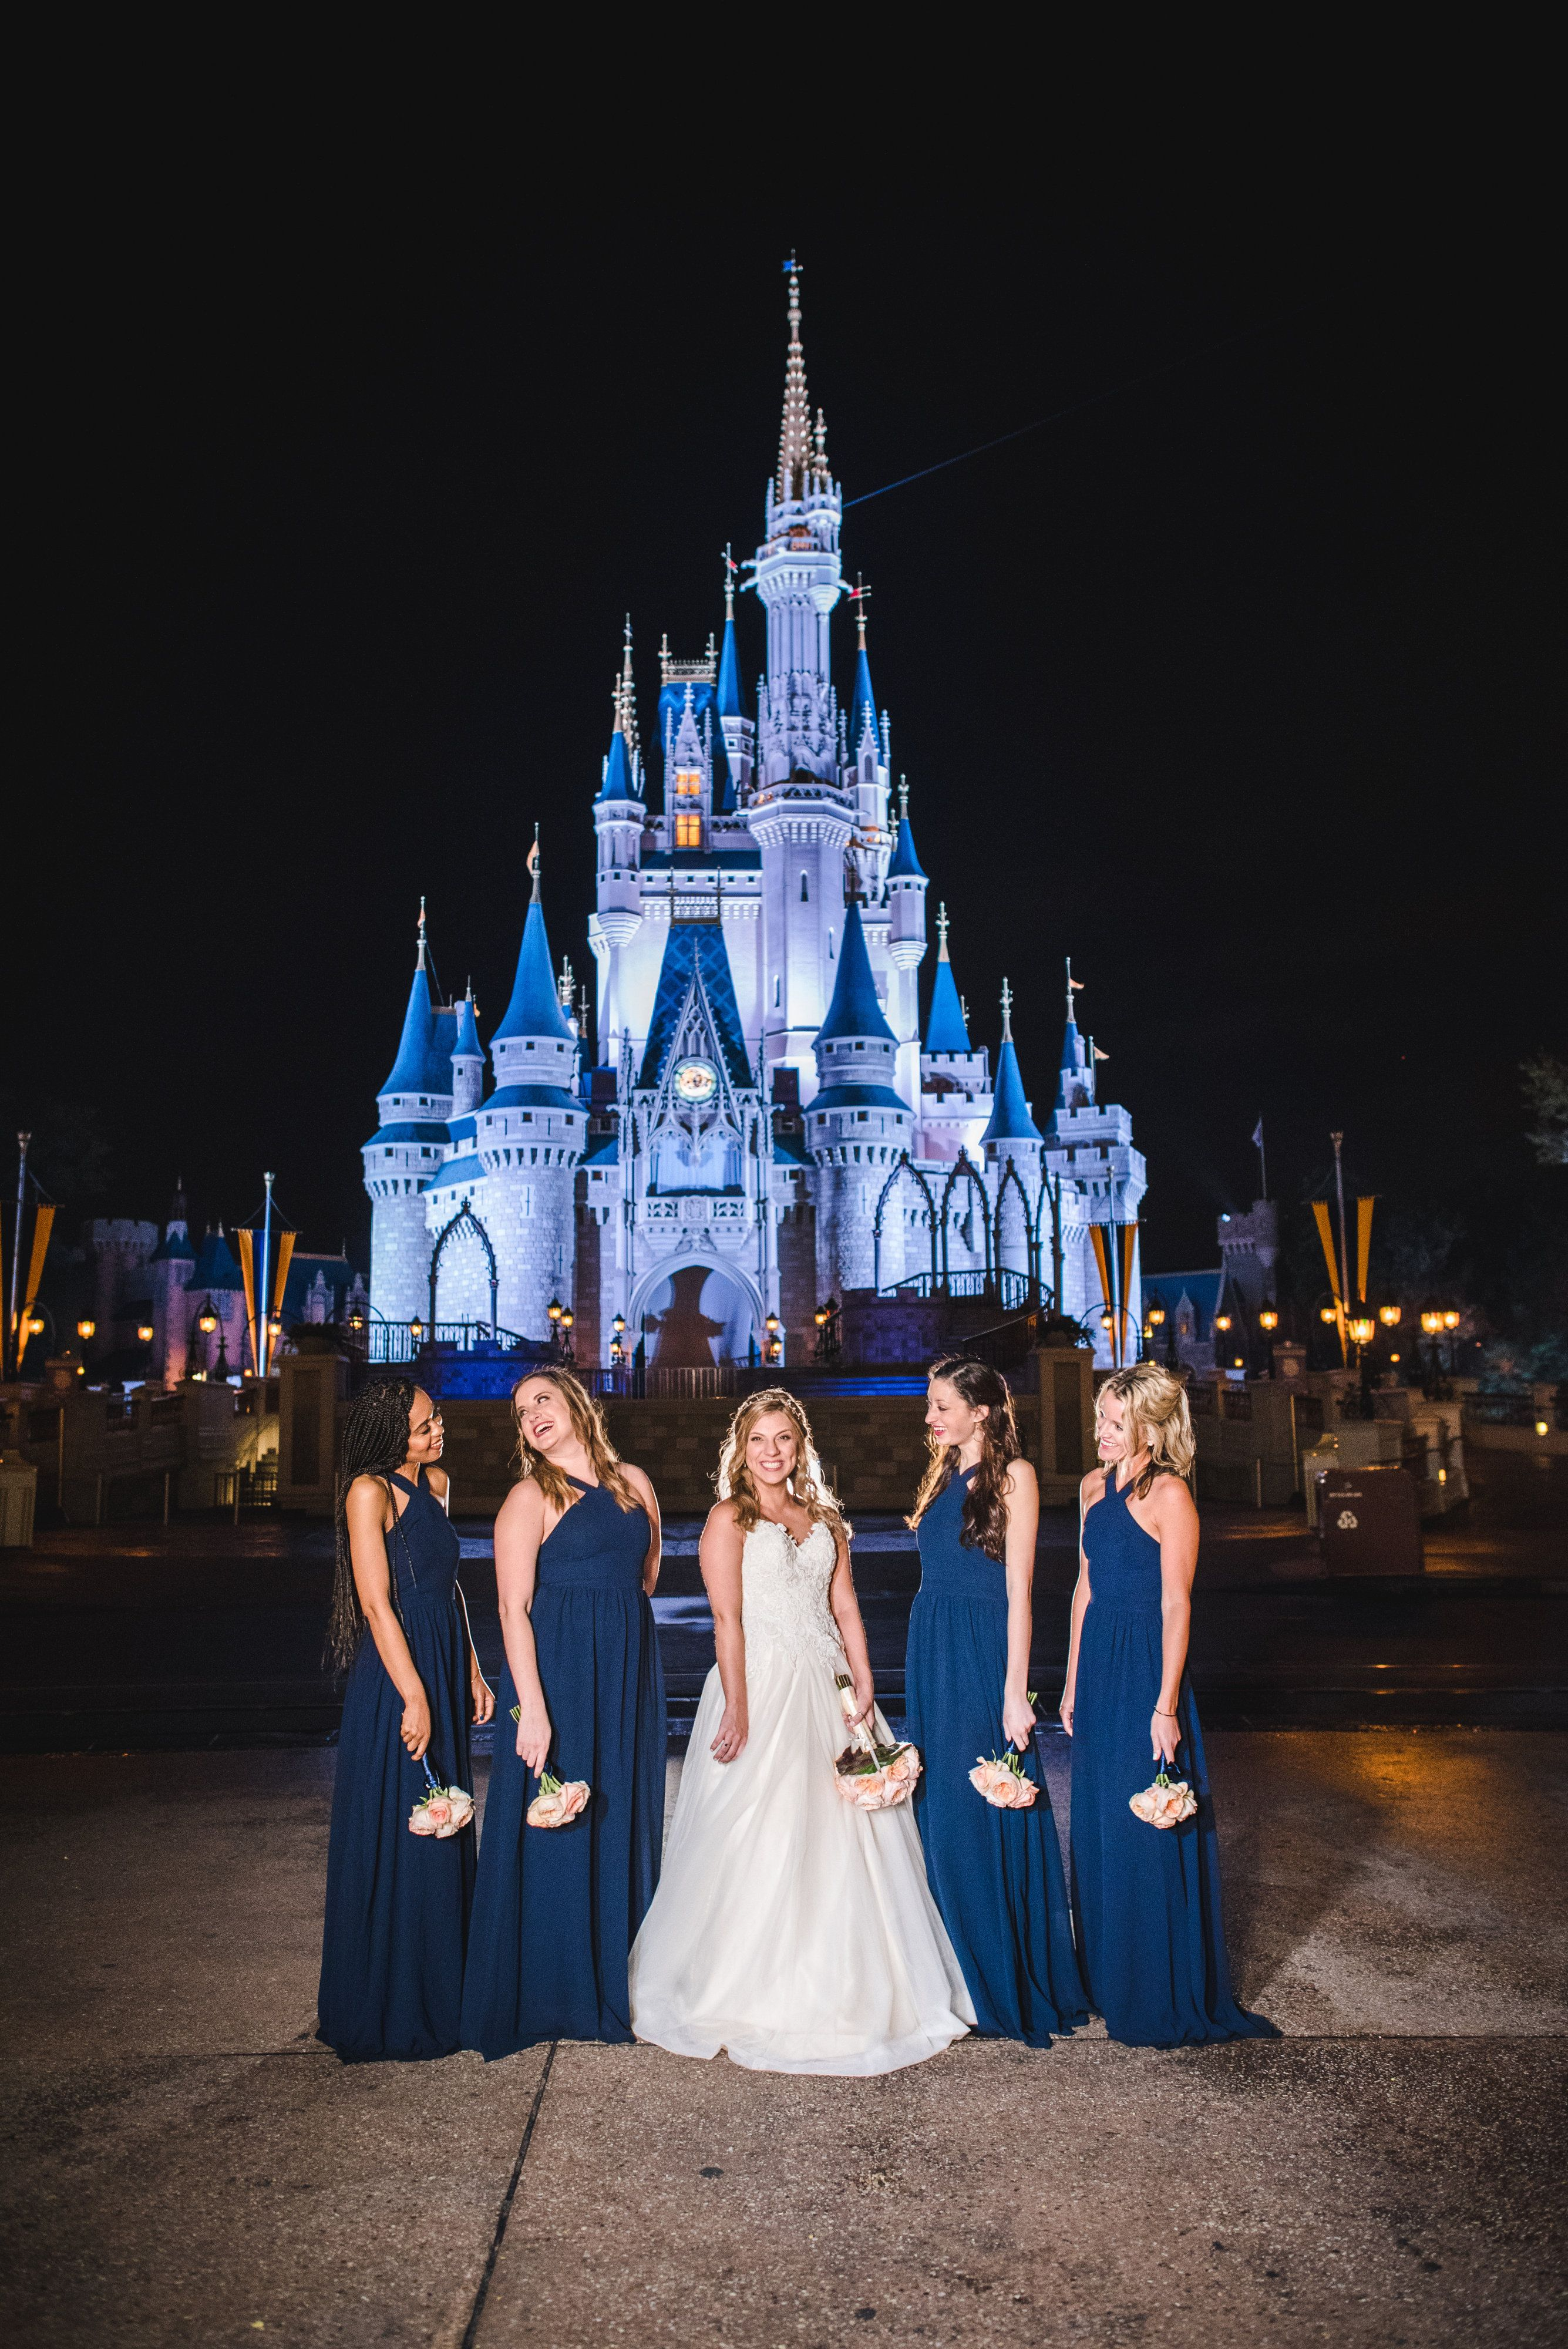 Bridesmaids Magic Kingdom Wedding Disney Wedding Disney World Wedding Disney Wedding Disney Wedding Theme